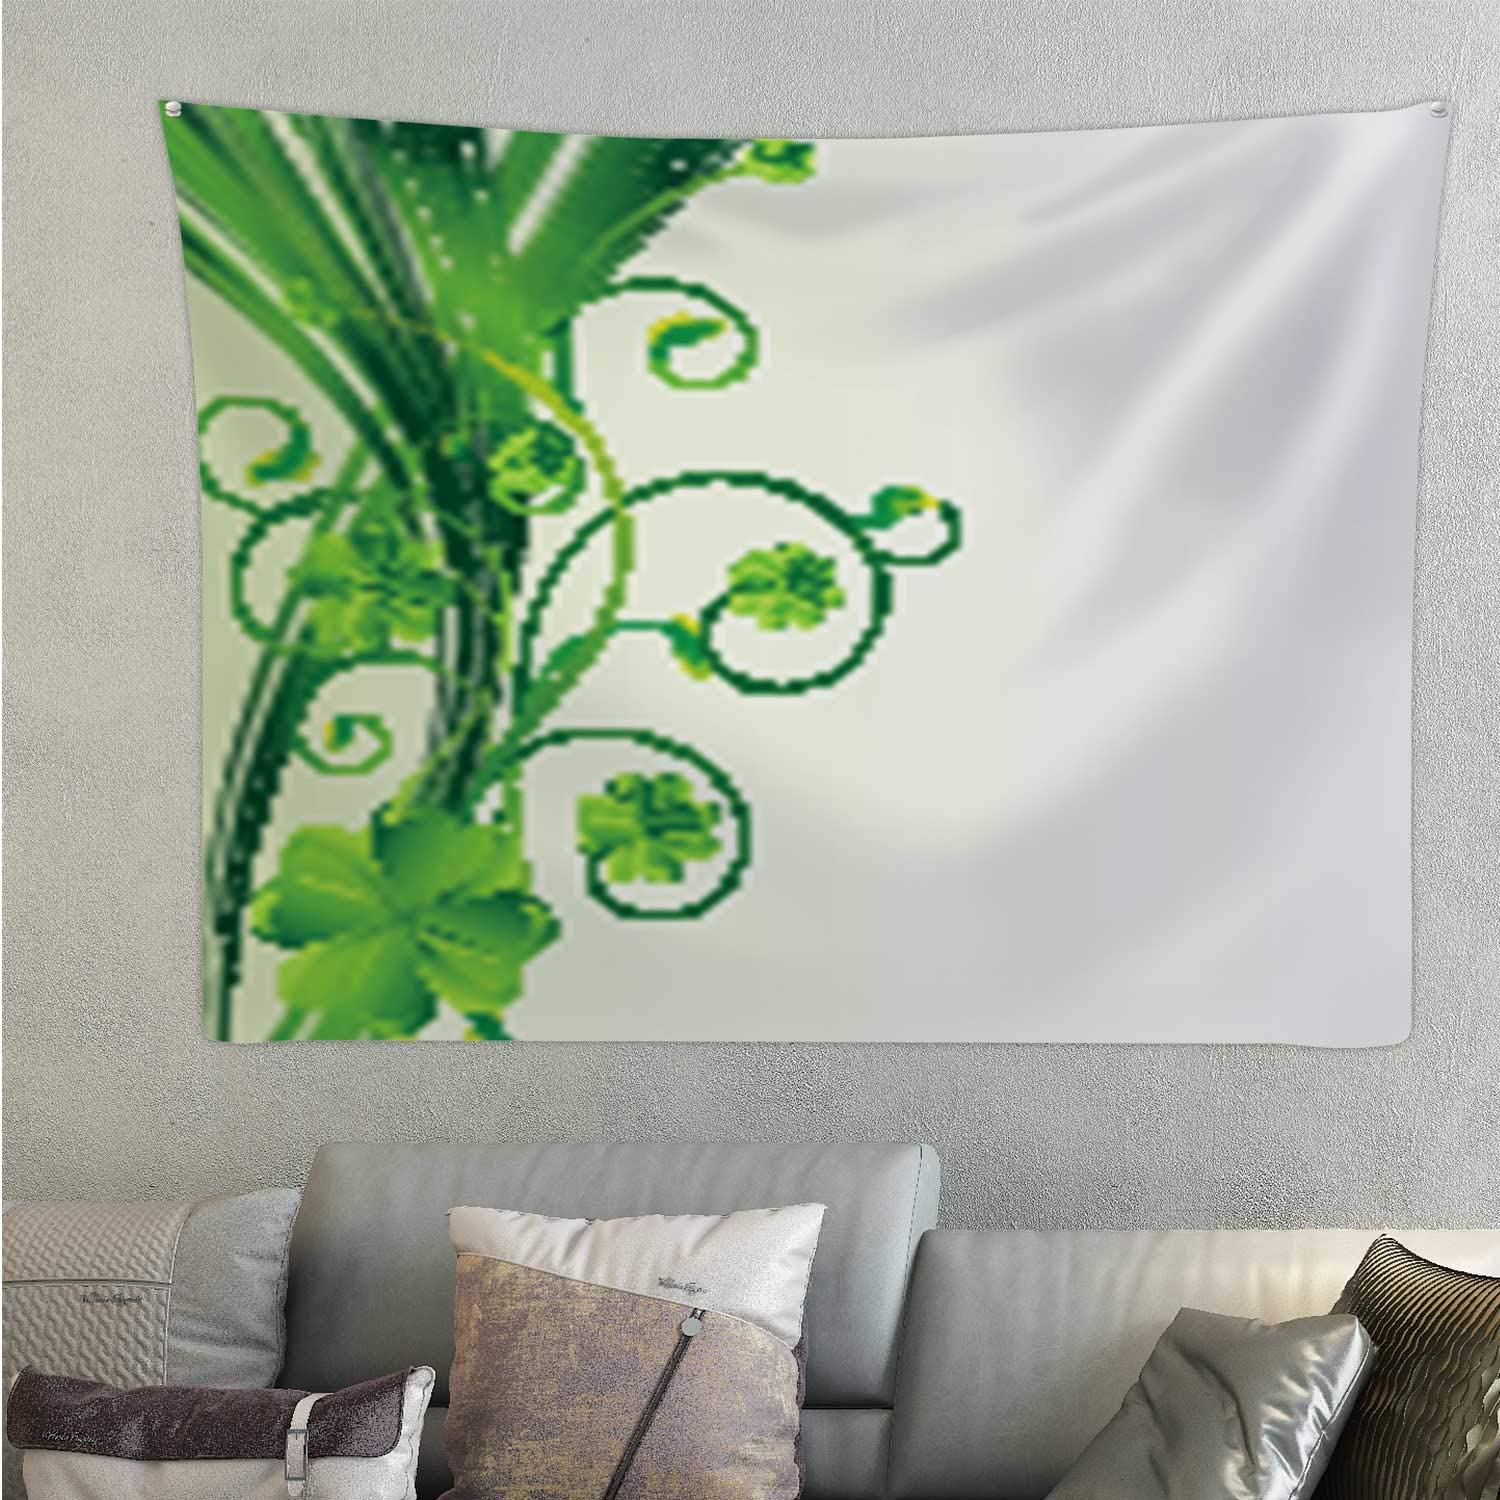 Hitecera Happy St.Patrick's Day.Clover Floral Pattern.Template p Design,Tapestry's Wall Hanging Room Decorations 59.1'' x 51.1''(WxH)